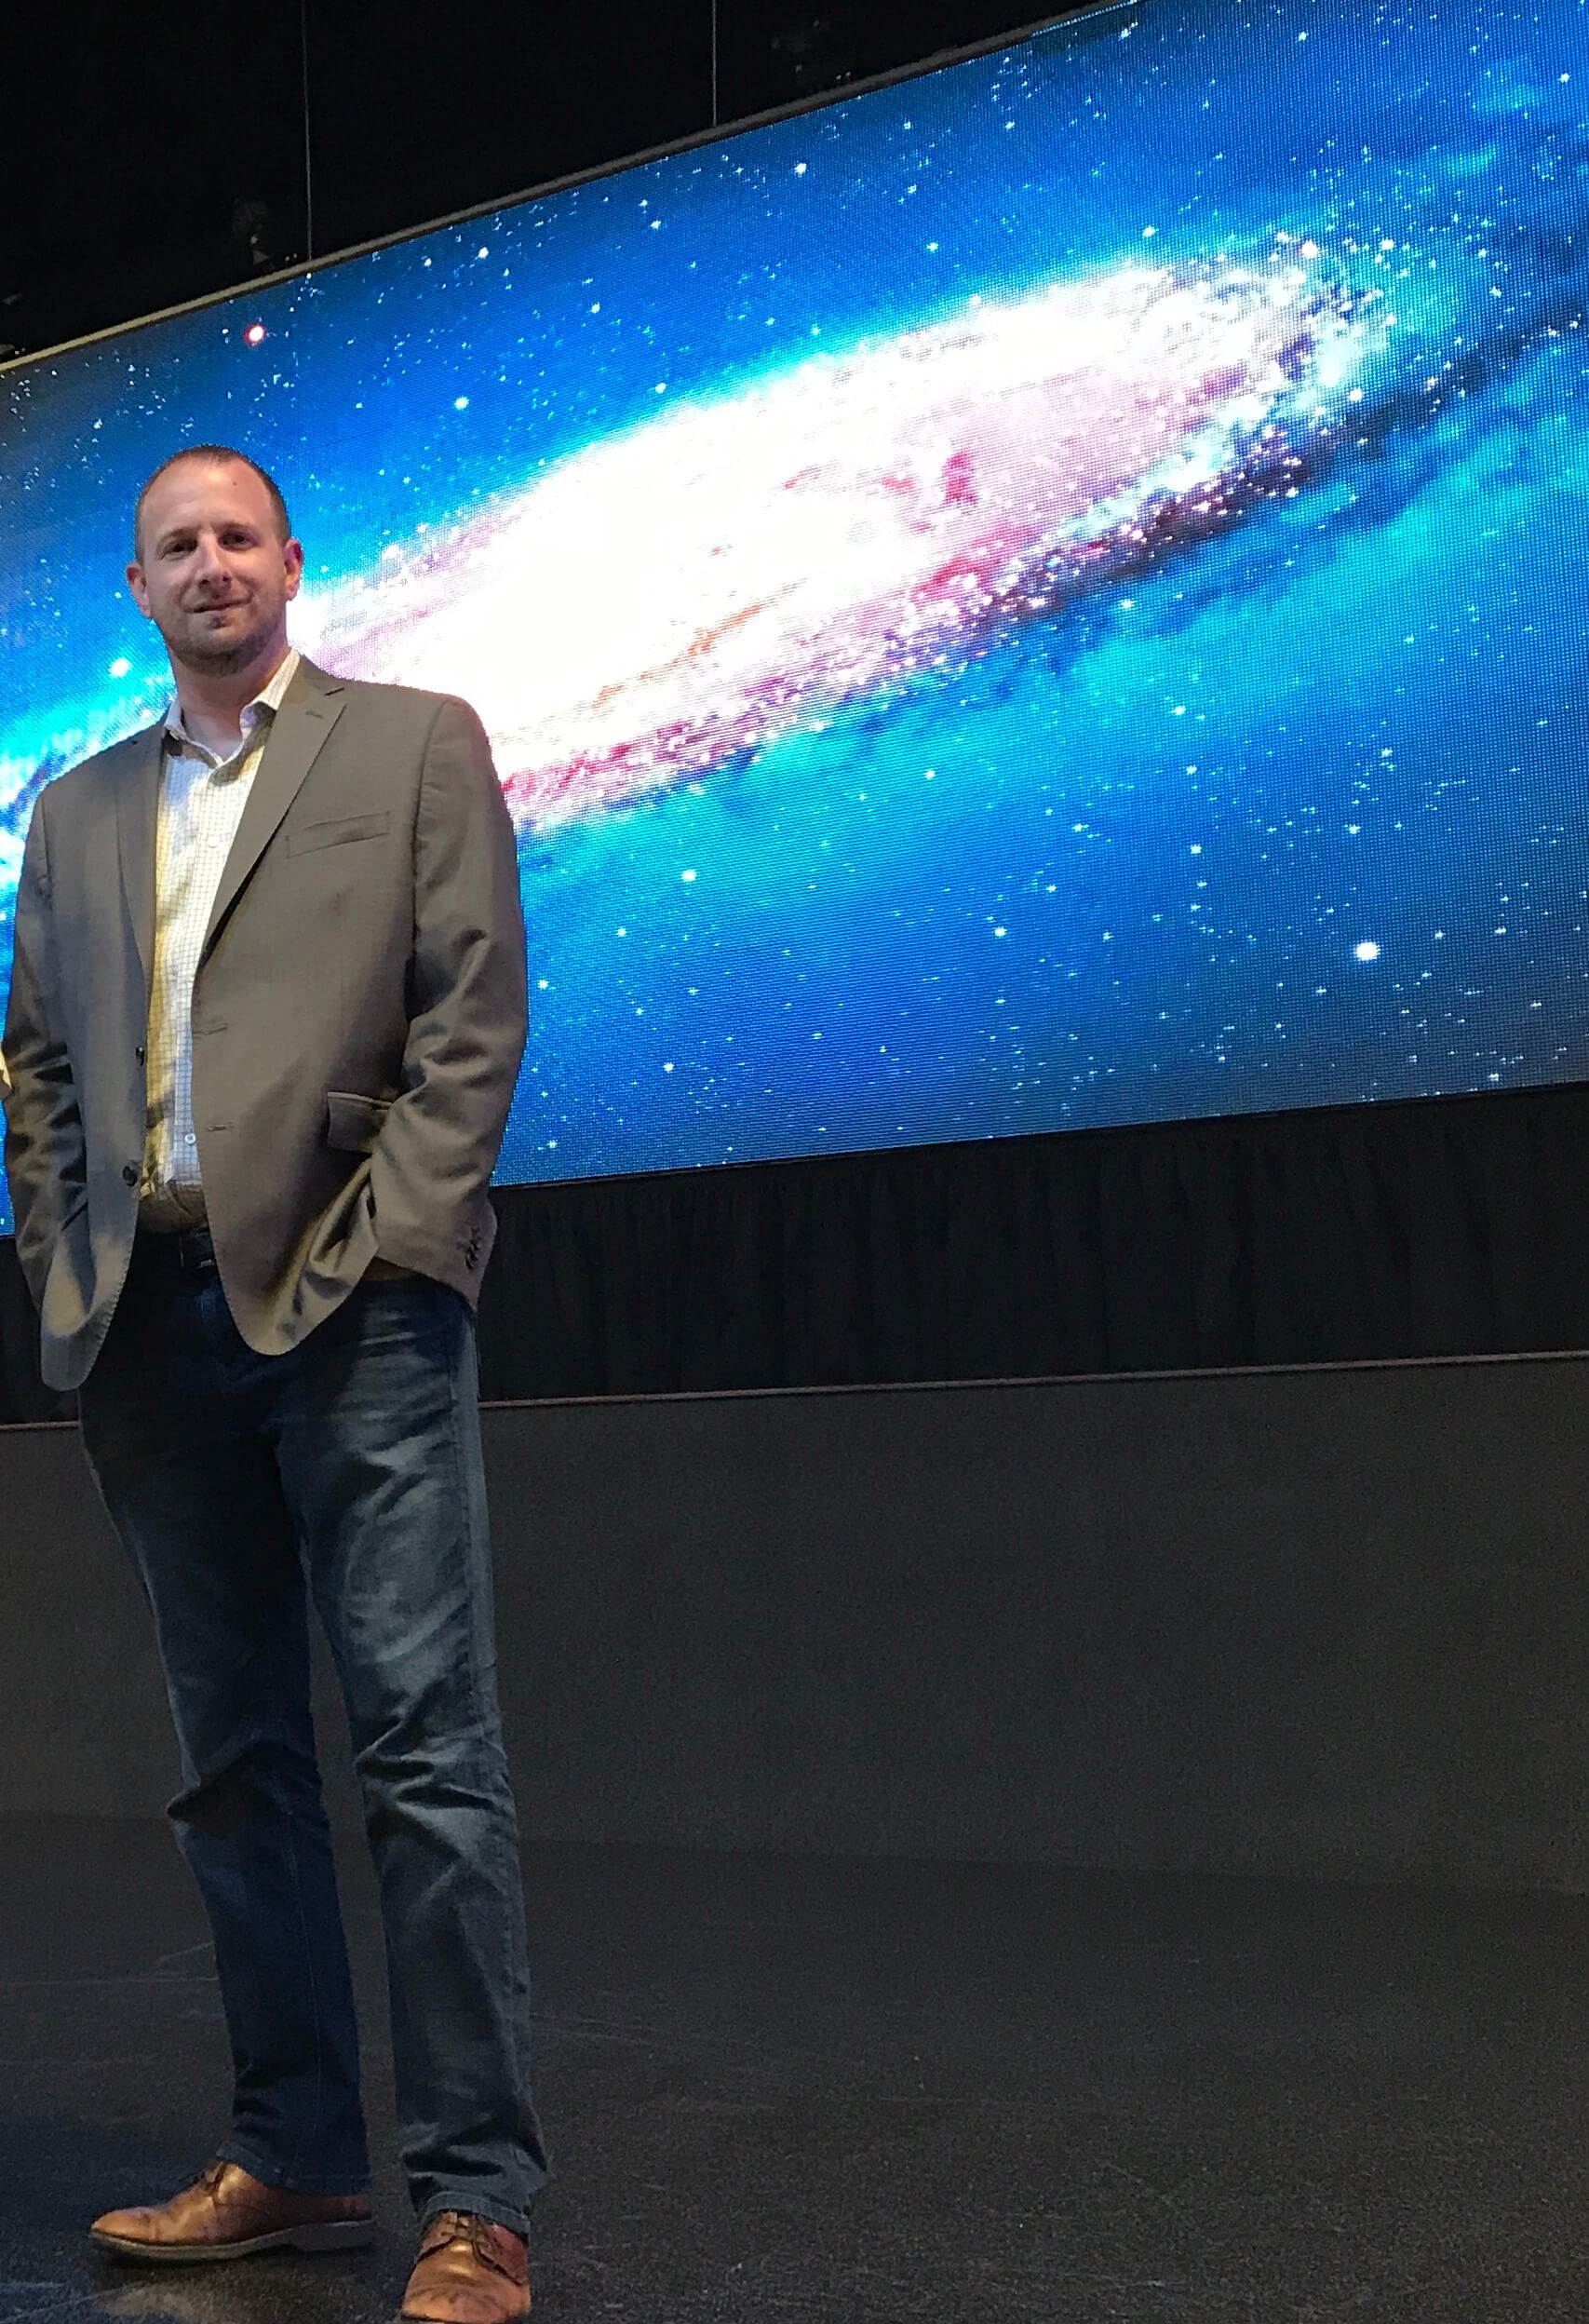 IAS Technology CEO Jeremy Caldera stands in front of a Delta Displays LED video wall similar to the one he is installing for a Fortune 100 company.